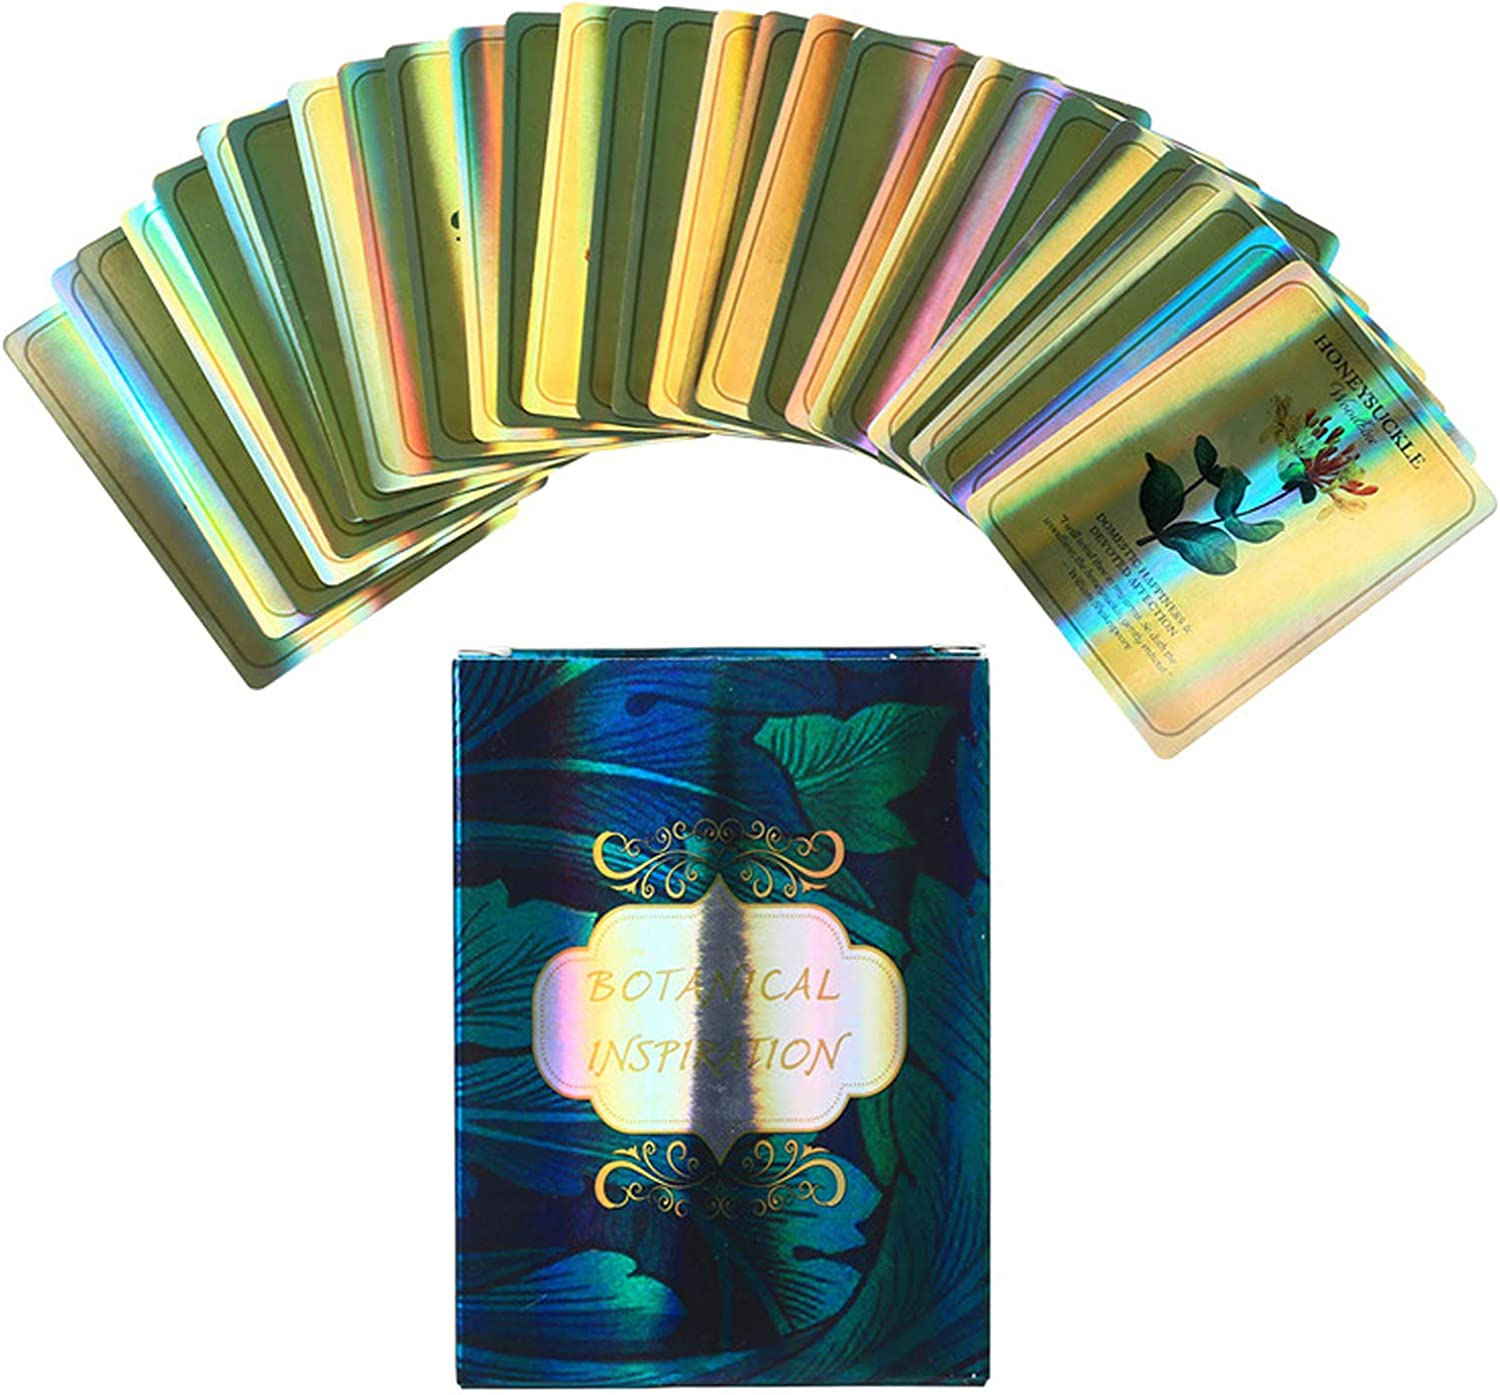 70% OFF Outlet Yitengteng Holographic Tarot Cards Inspirat Botanical Apocalypse At the price of surprise